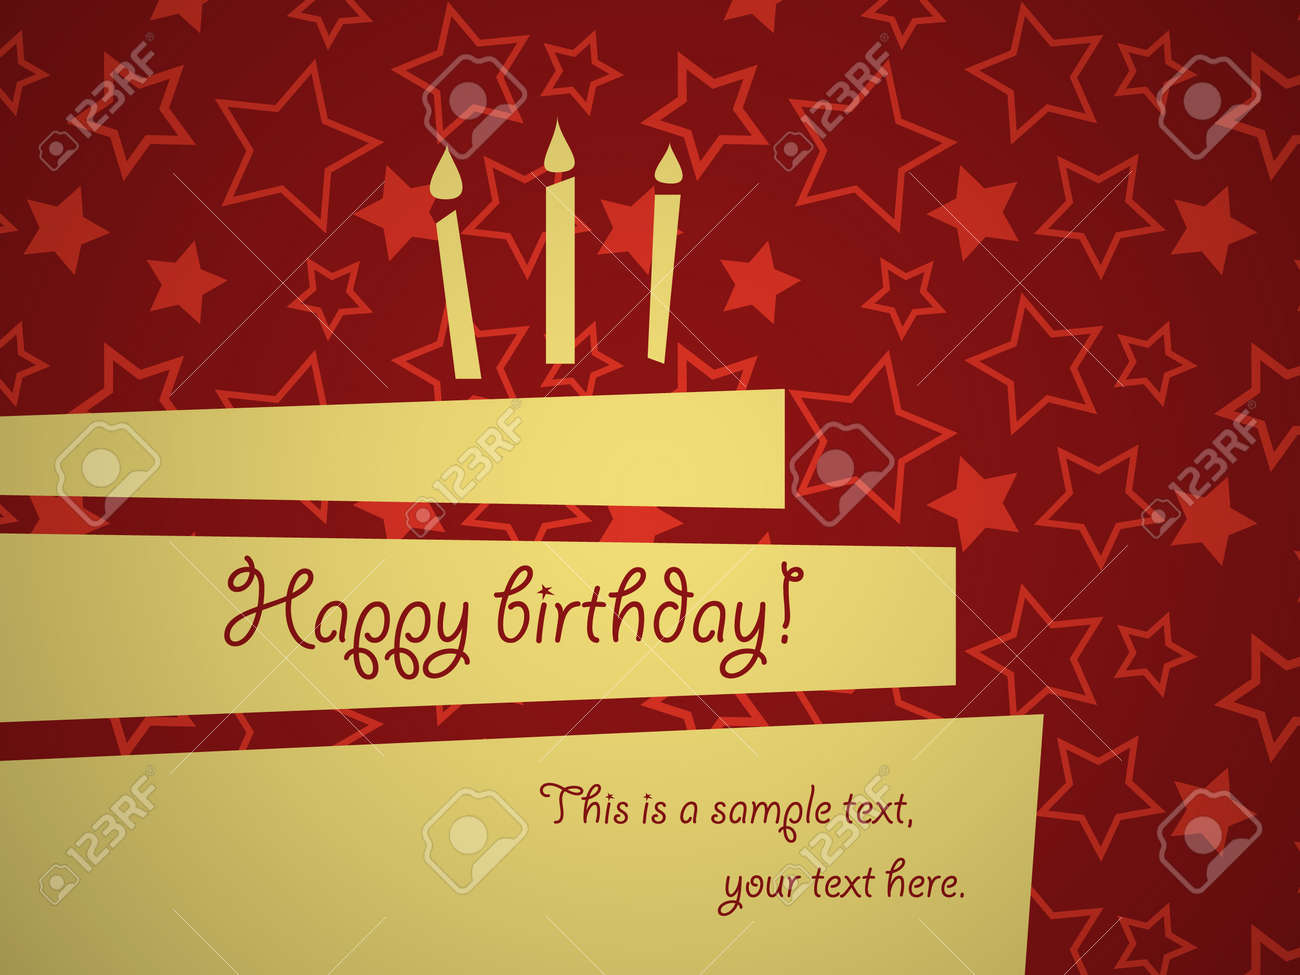 Birthday Wishes Templates Word Birthday Card TemplatesTemplate – Free Birthday Card Template Word